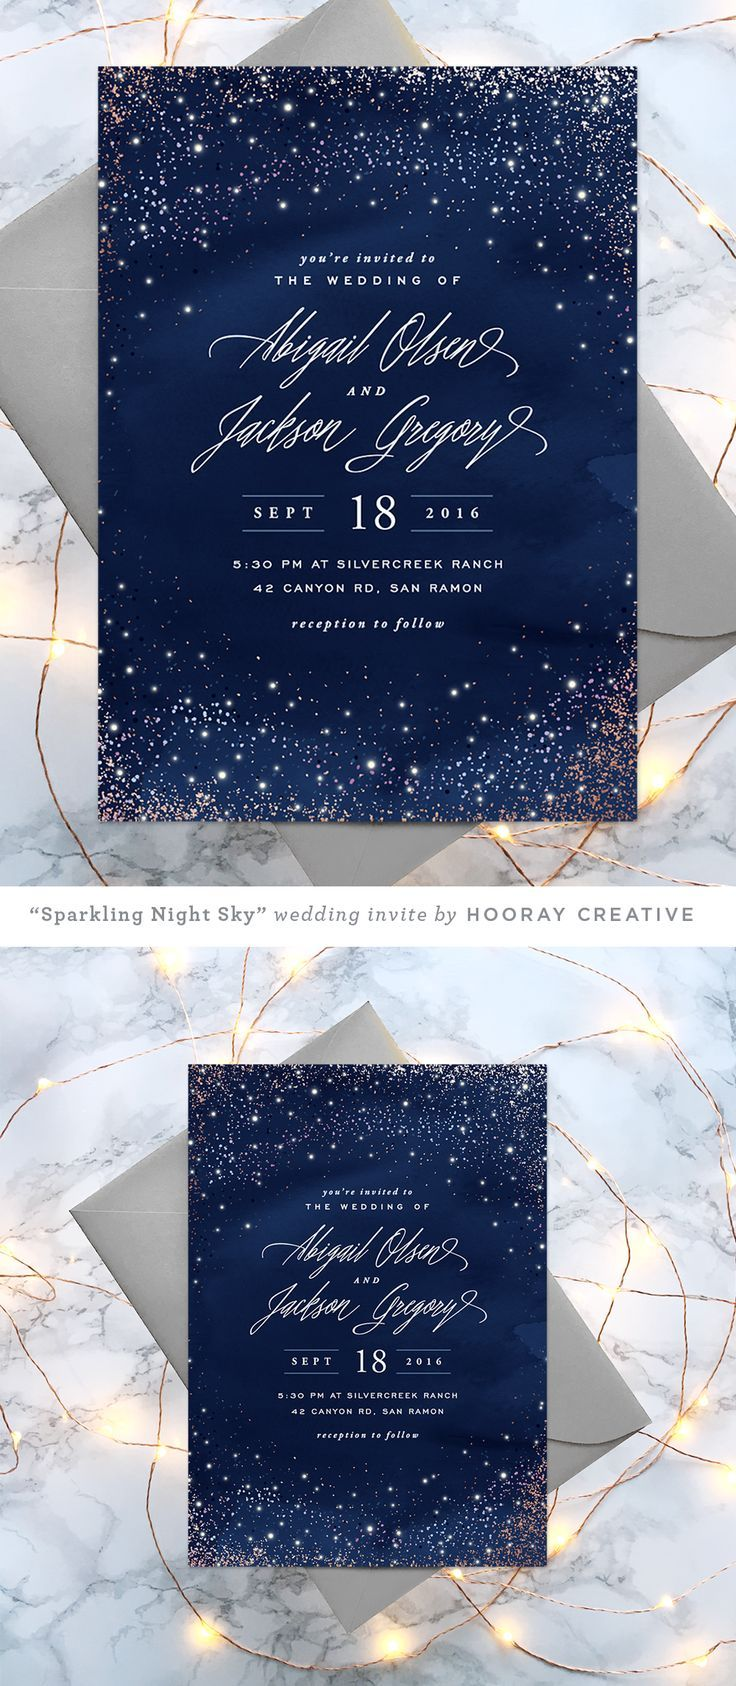 sister wedding invitation card wordings%0A   Sparkling Night Sky   starry wedding invitation   design and styling by  Hooray Creative